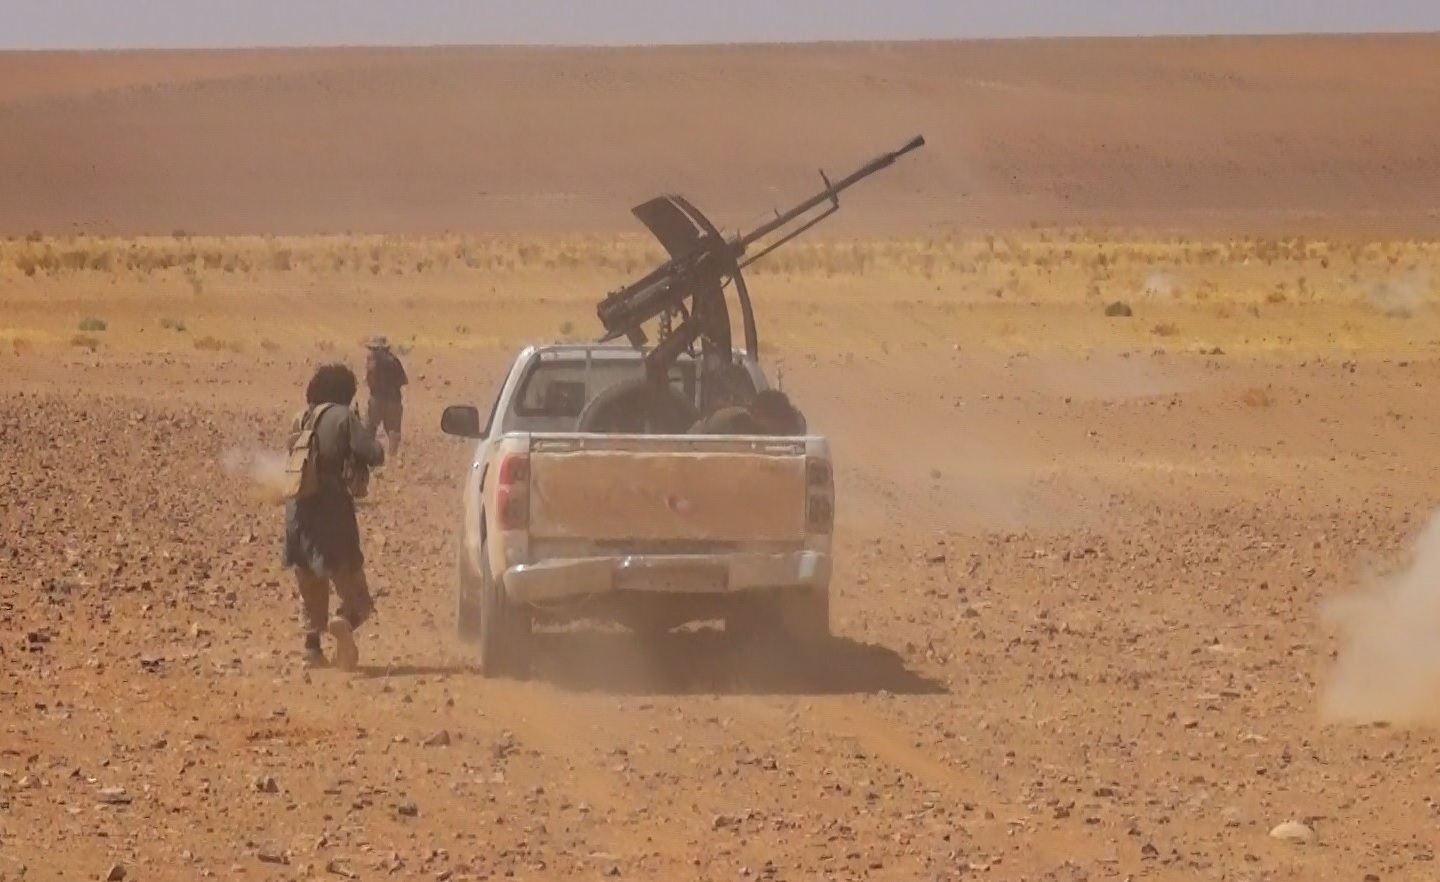 More Details About ISIS Amubsh Of Syrian Army Unit In Al-Safa Two Days Ago